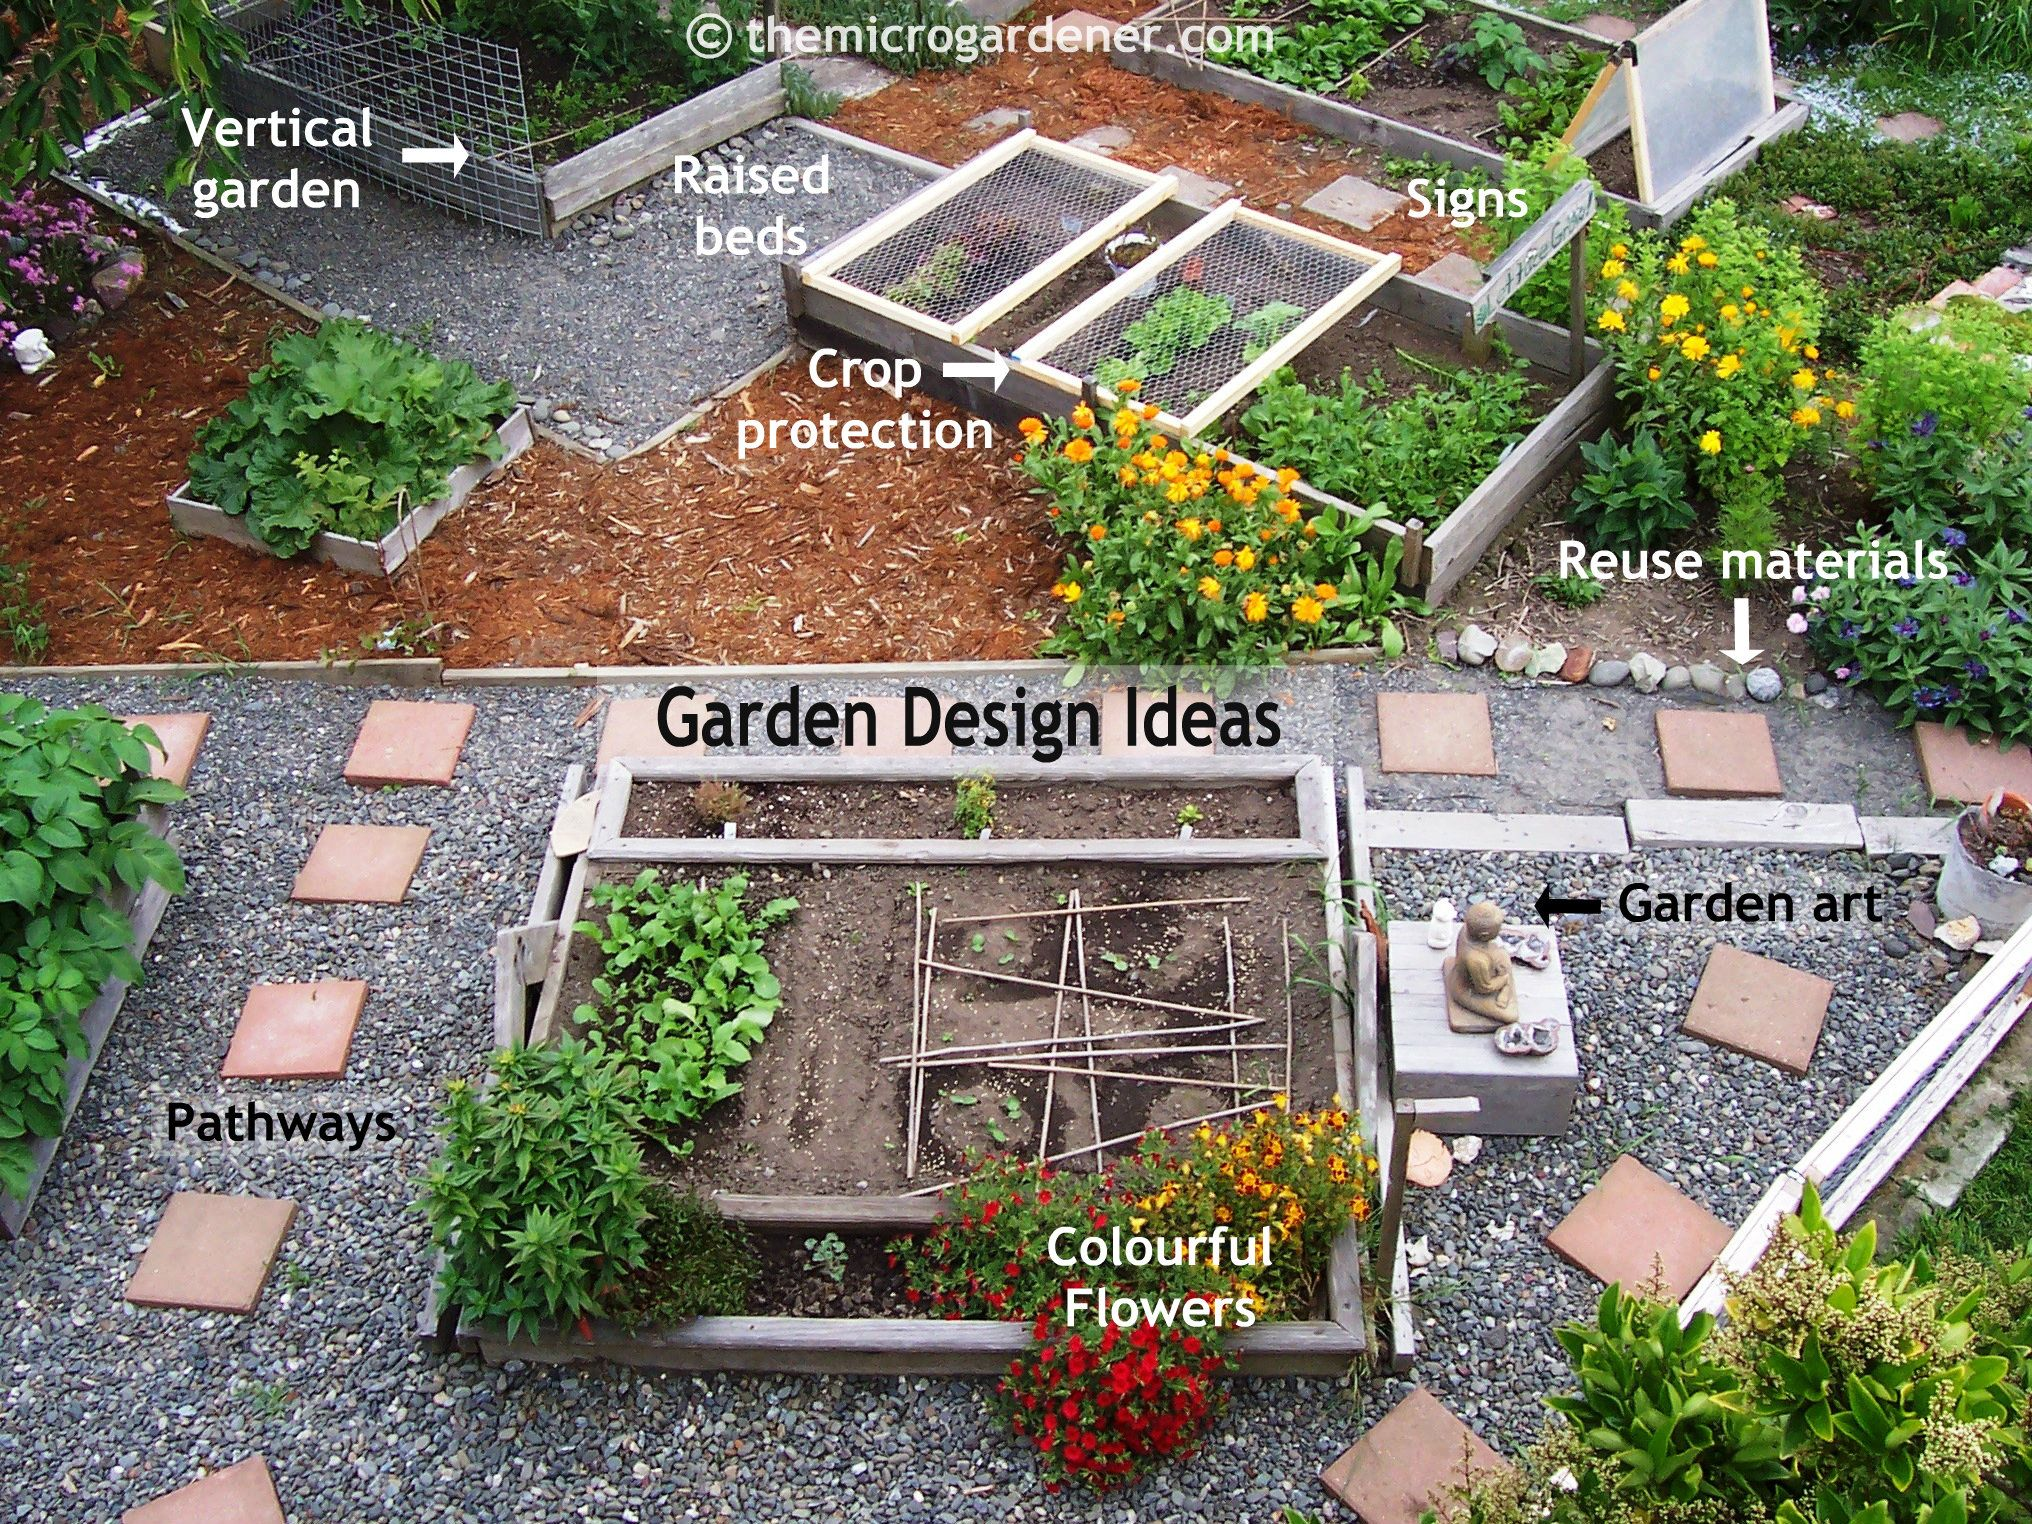 Small garden design ideas on pinterest vertical gardens for Little garden design